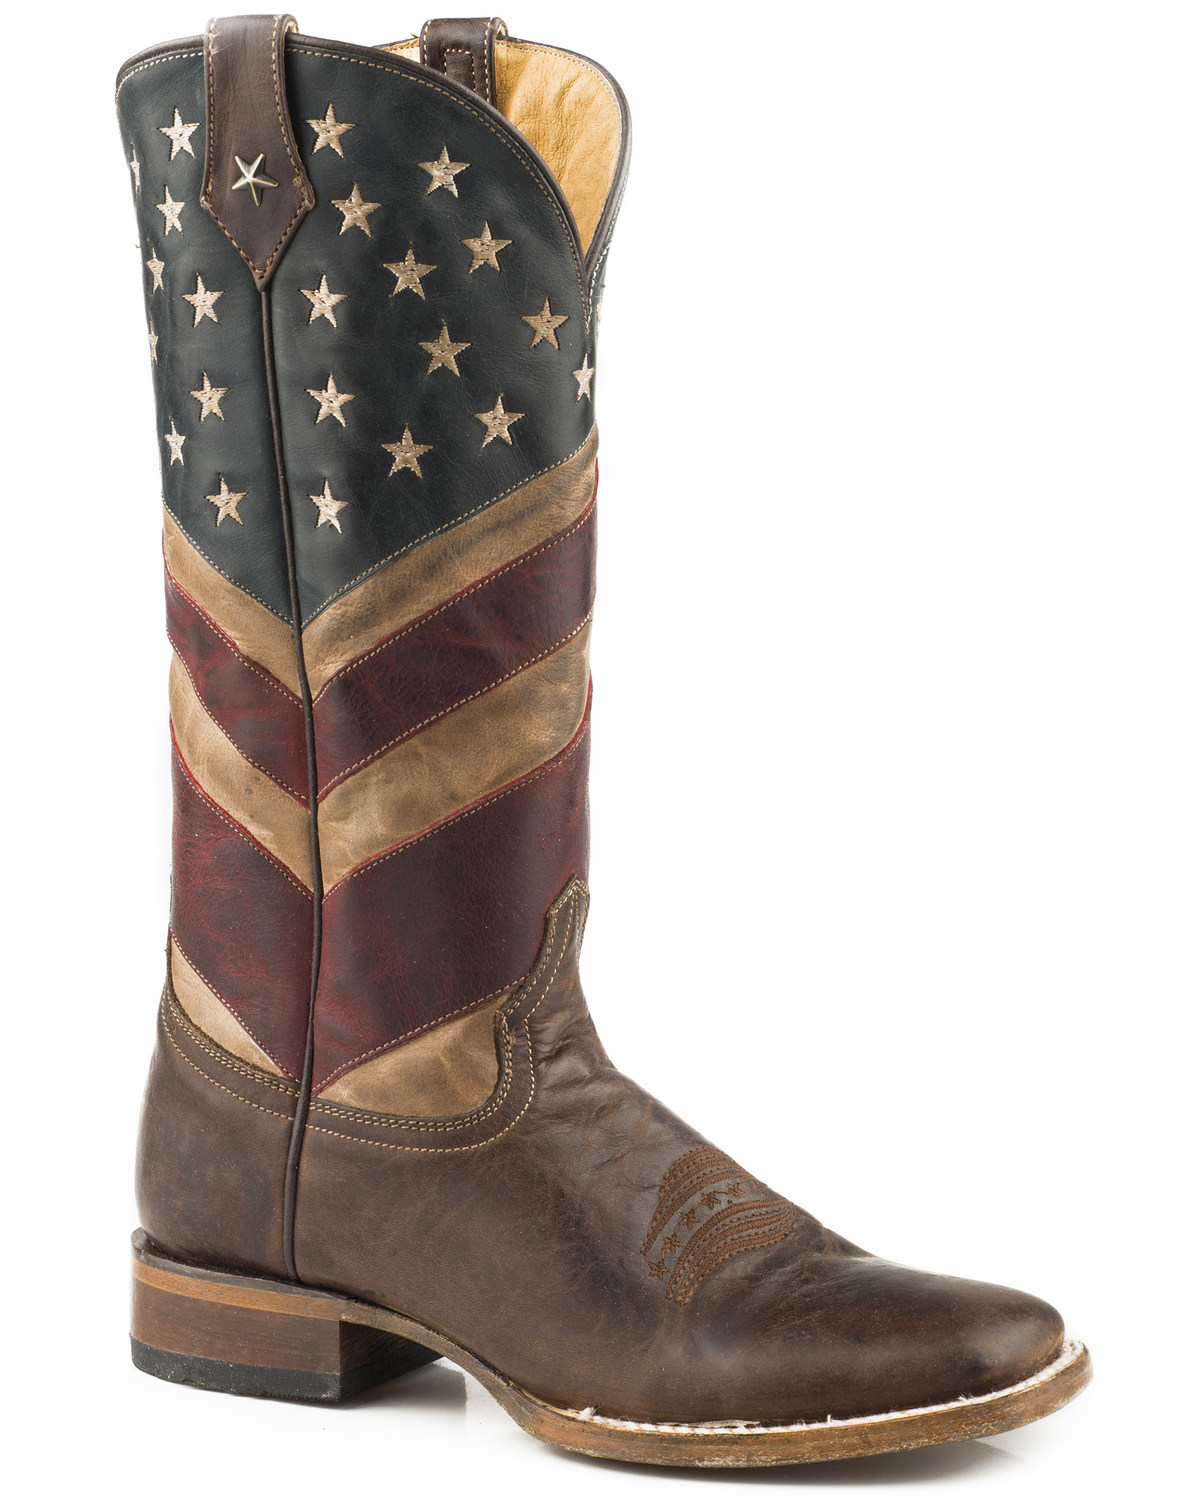 21163ce8f5c Roper Women s Old Glory American Flag Cowgirl Boots - Square Toe ...